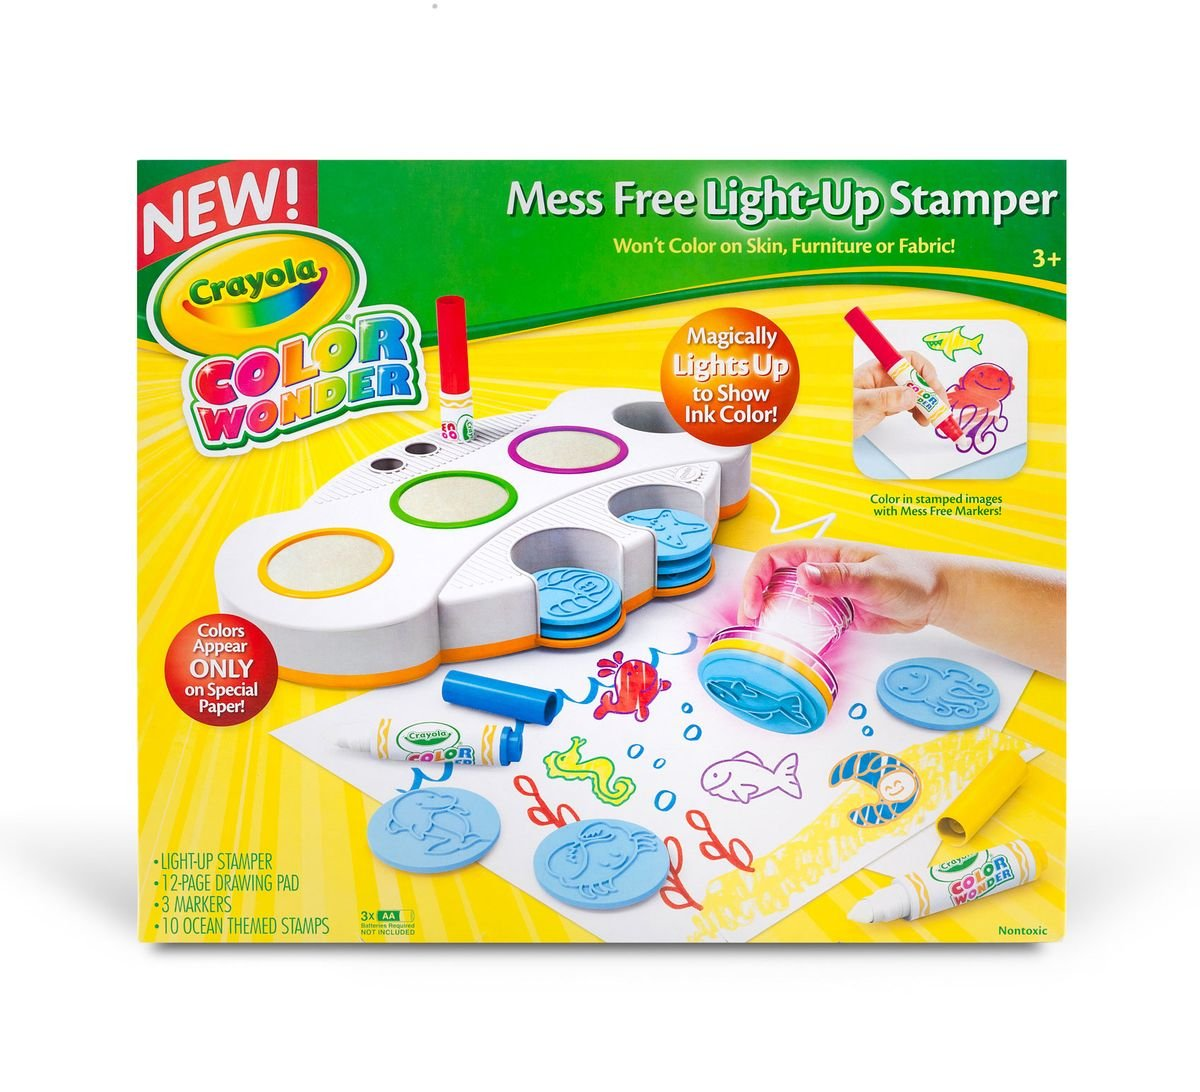 Crayola Color Wonder Mess Free Light-Up Stamper, Gift for Kids, Ages 3, 4, 5, 6